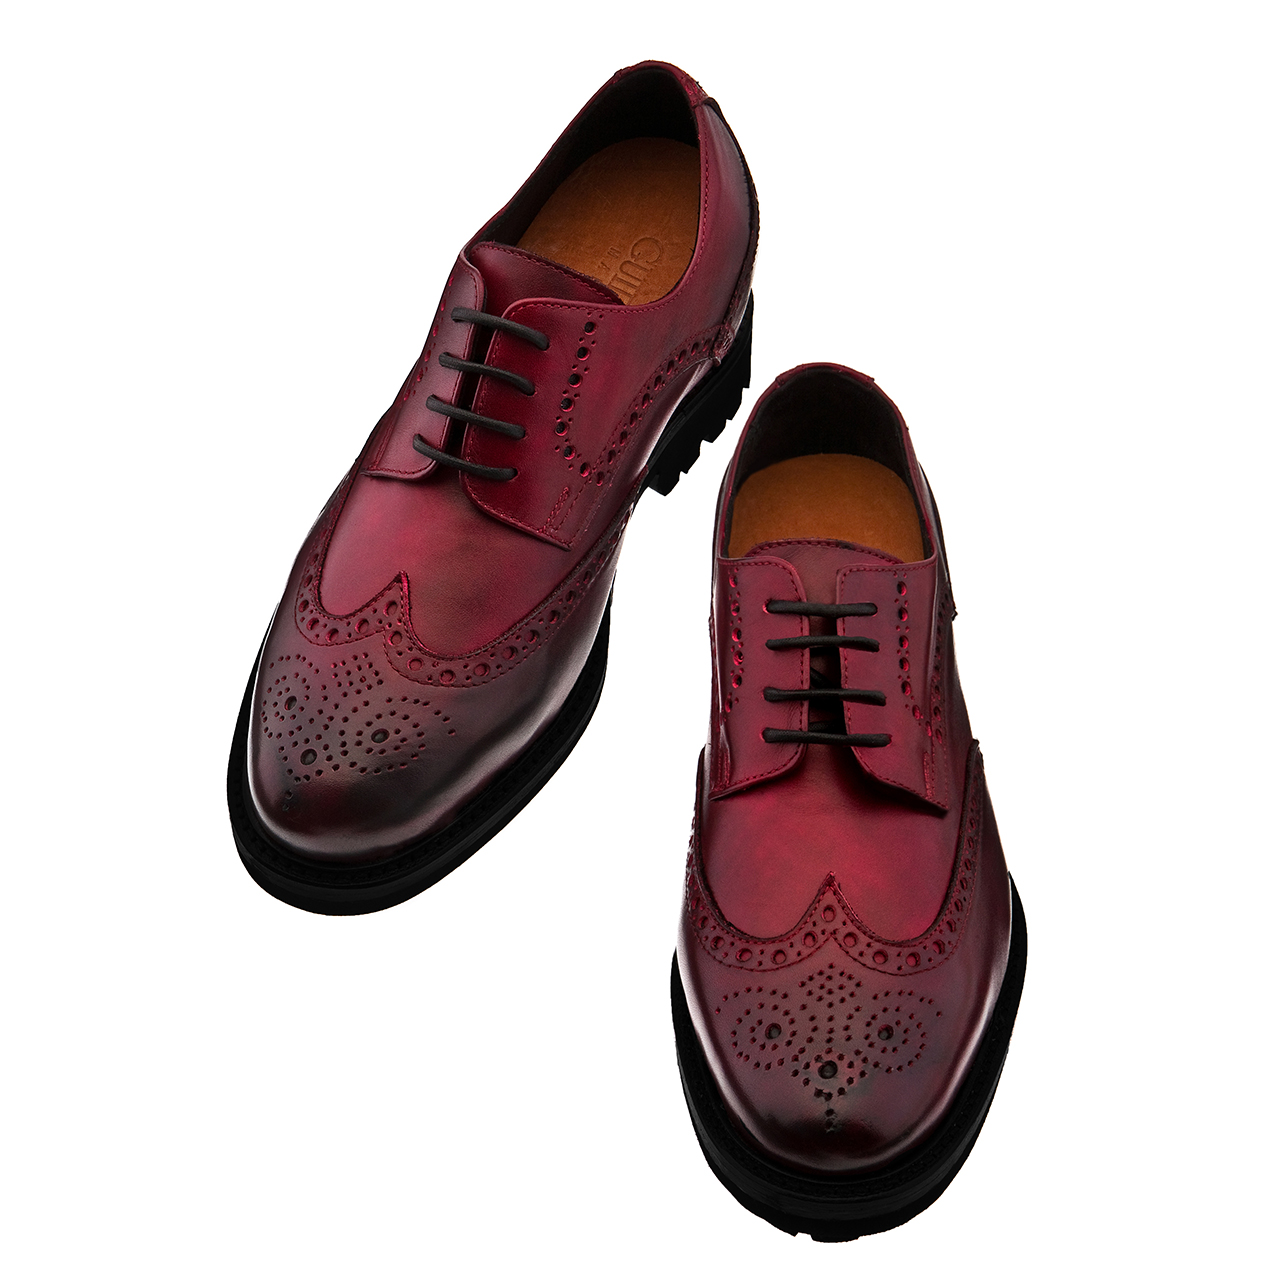 e24eb310541b Colorado Elevator Dress Shoes - GuidoMaggi